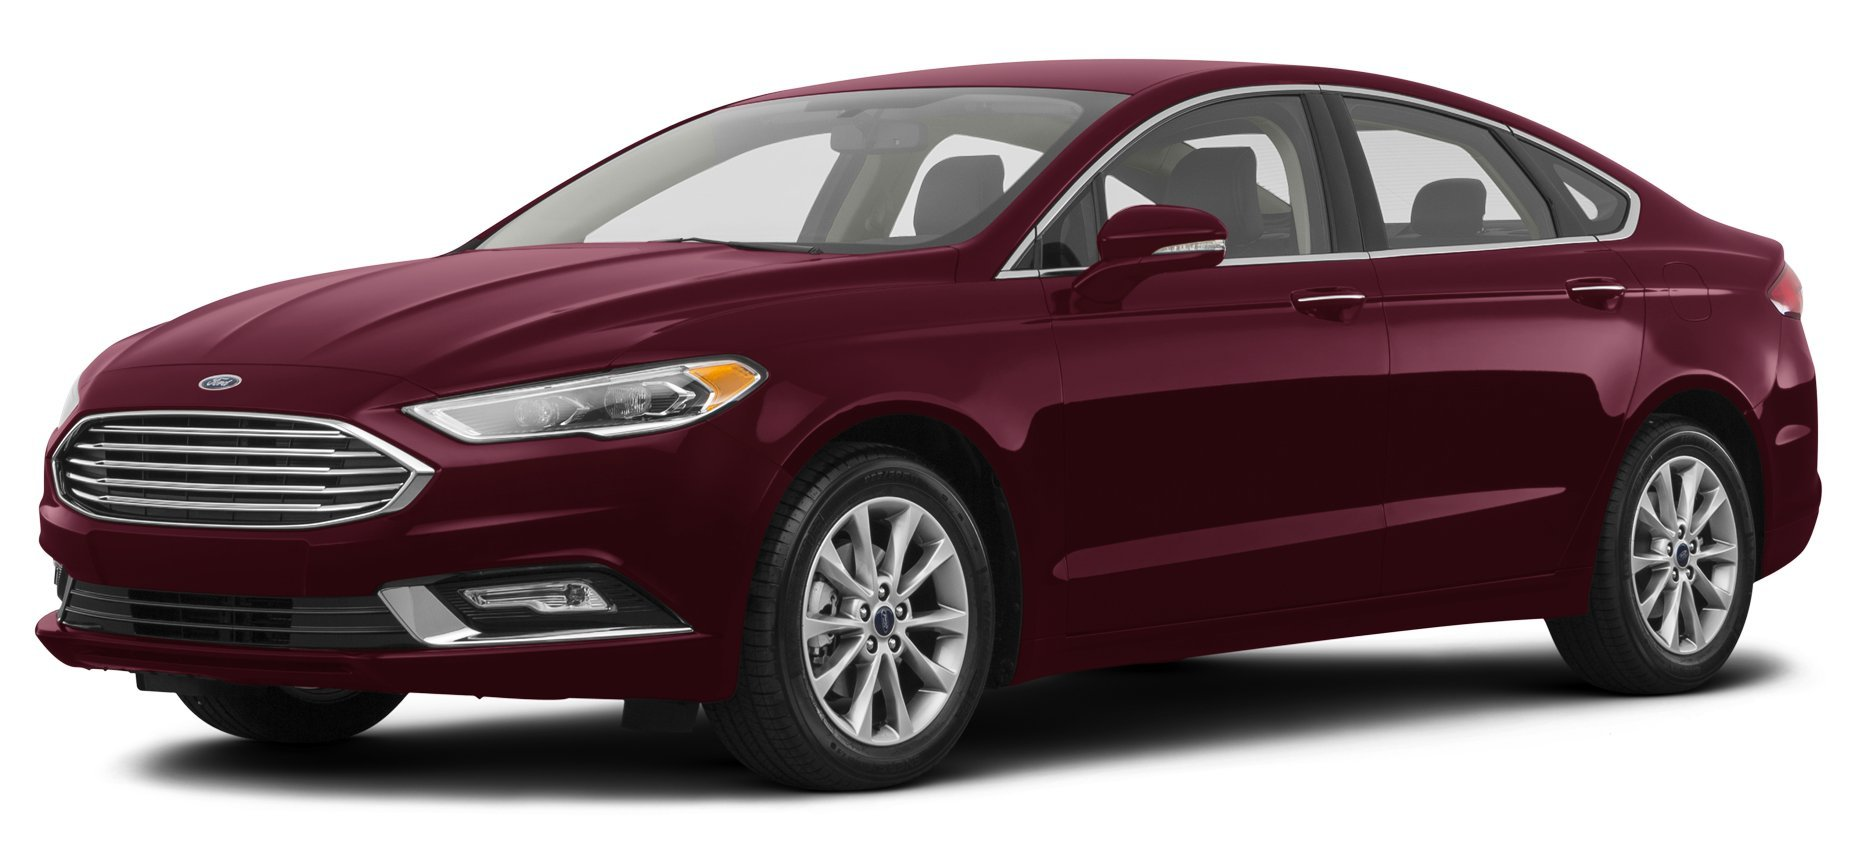 2017 ford taurus reviews images and specs vehicles. Black Bedroom Furniture Sets. Home Design Ideas